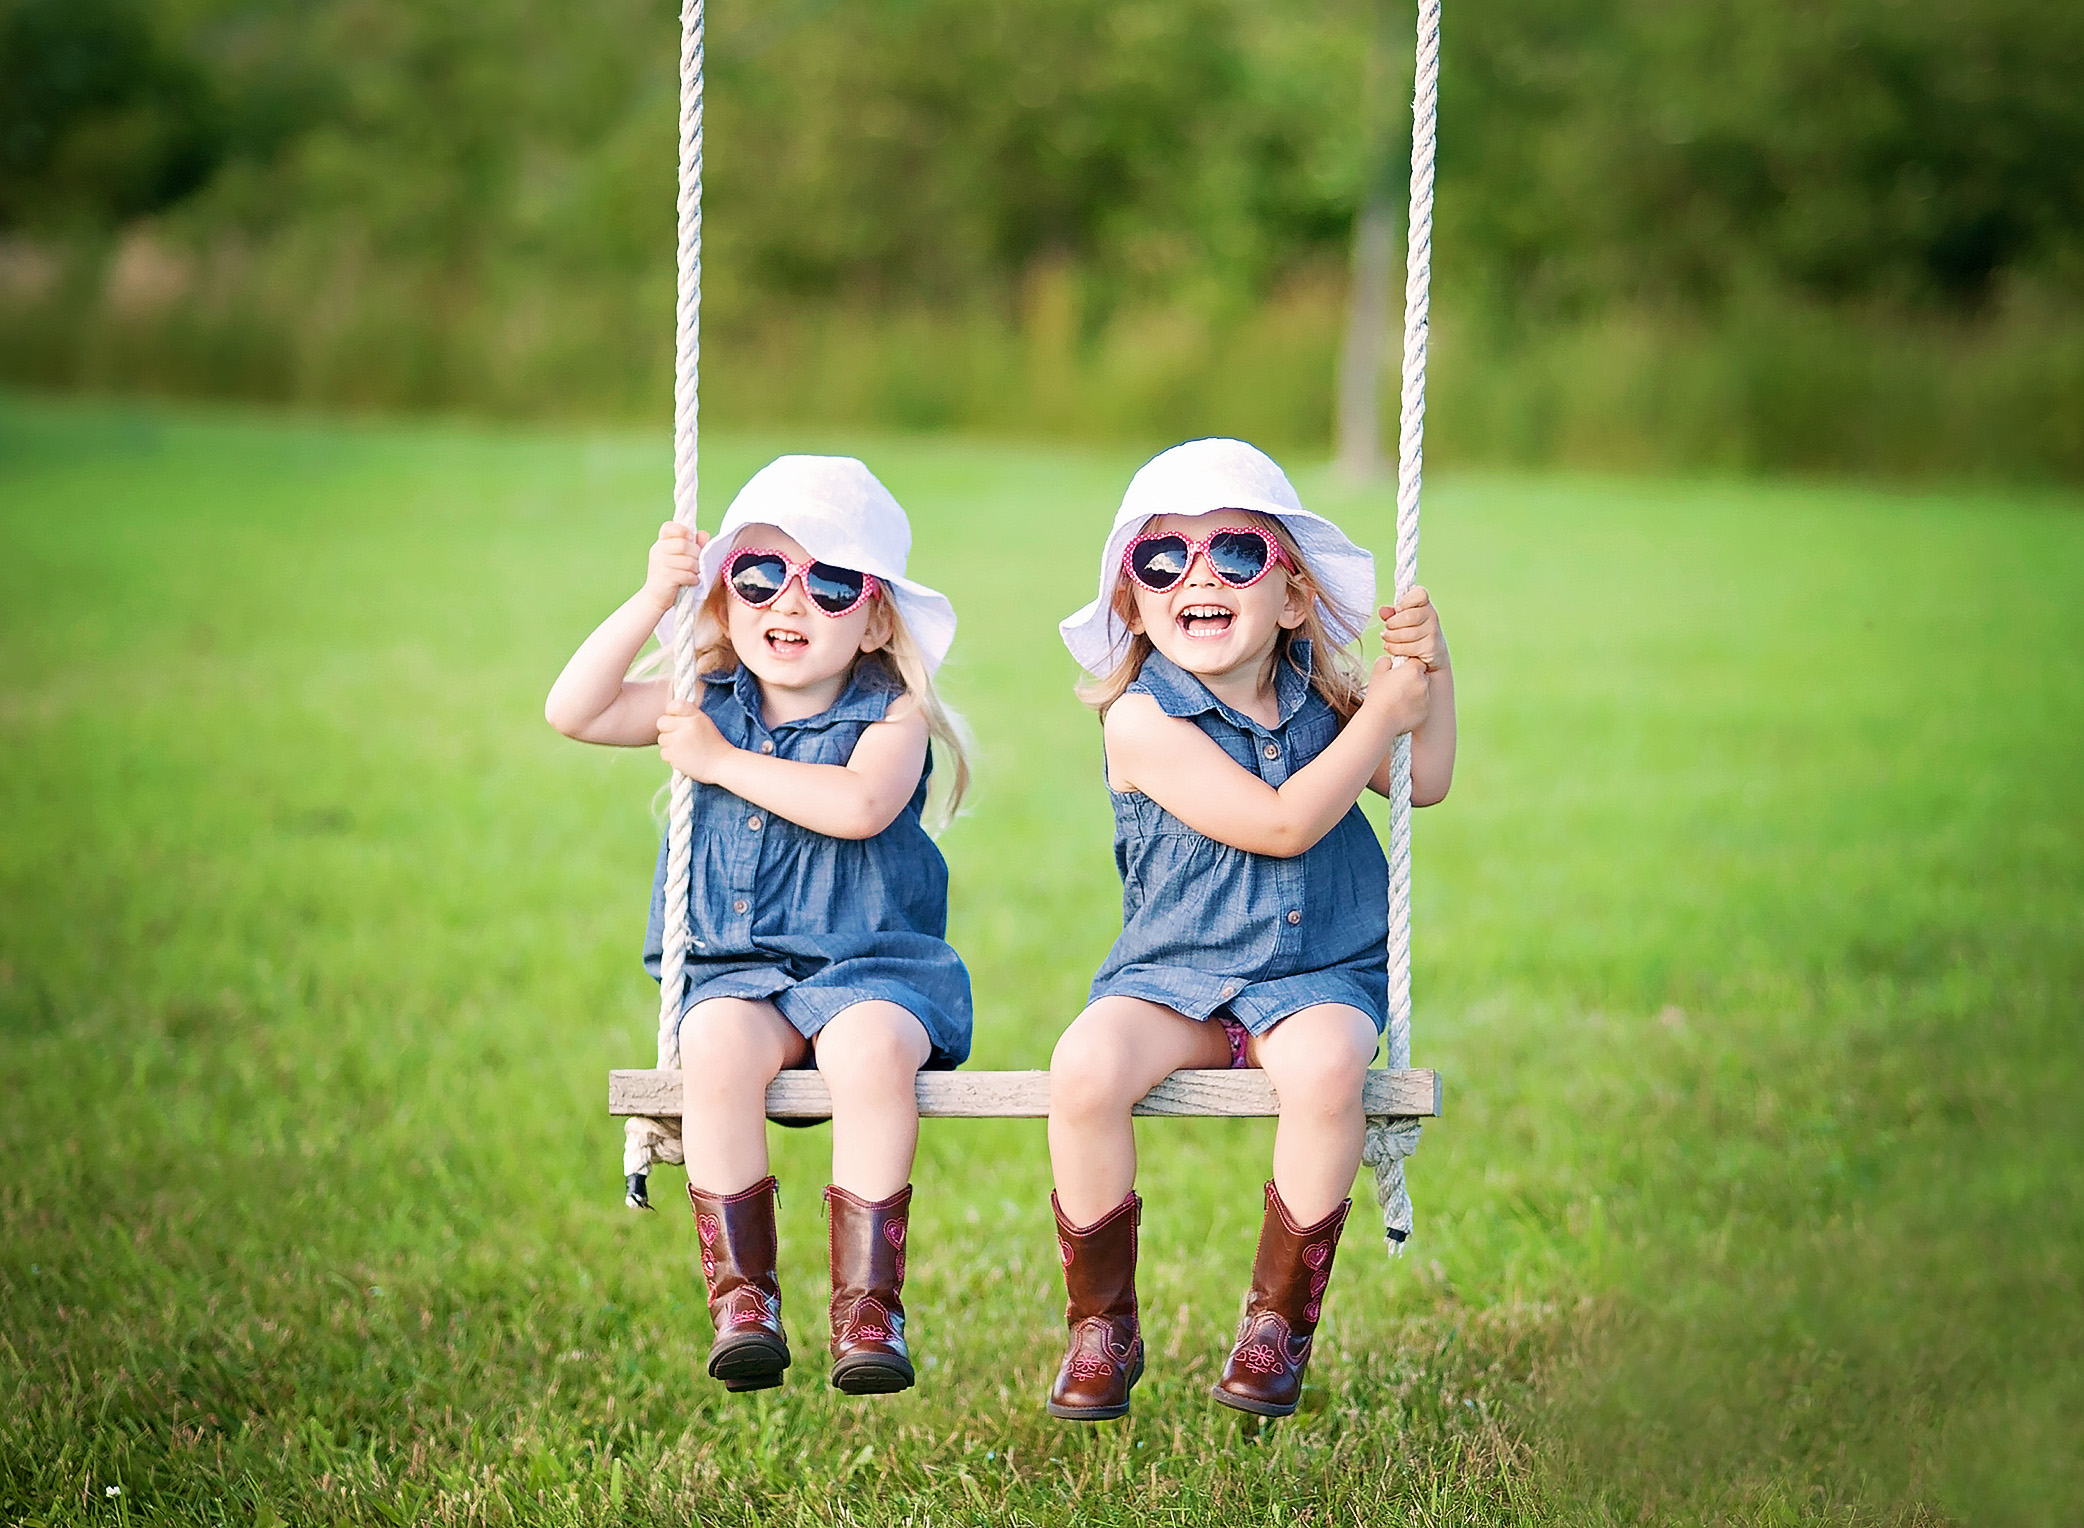 twin girls in sunglasses on a swing